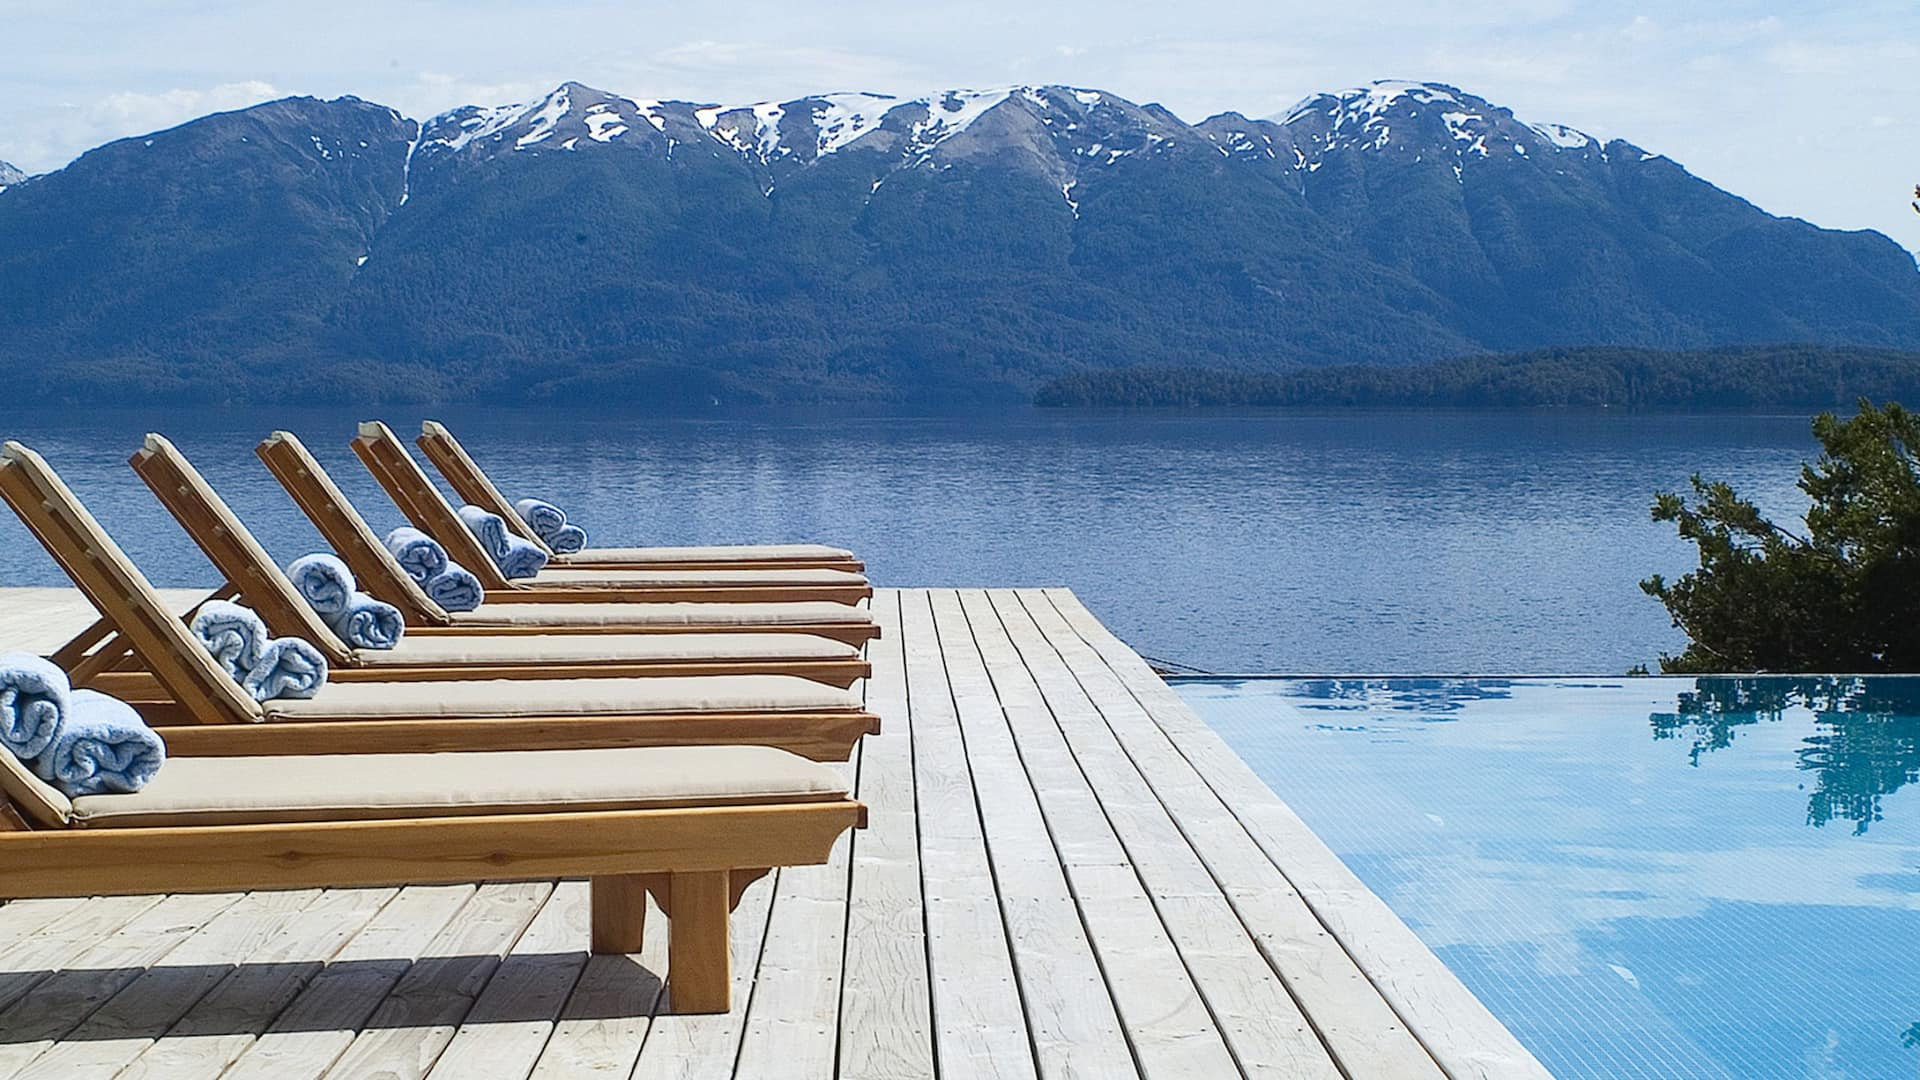 The most exhilarating lake and mountain views